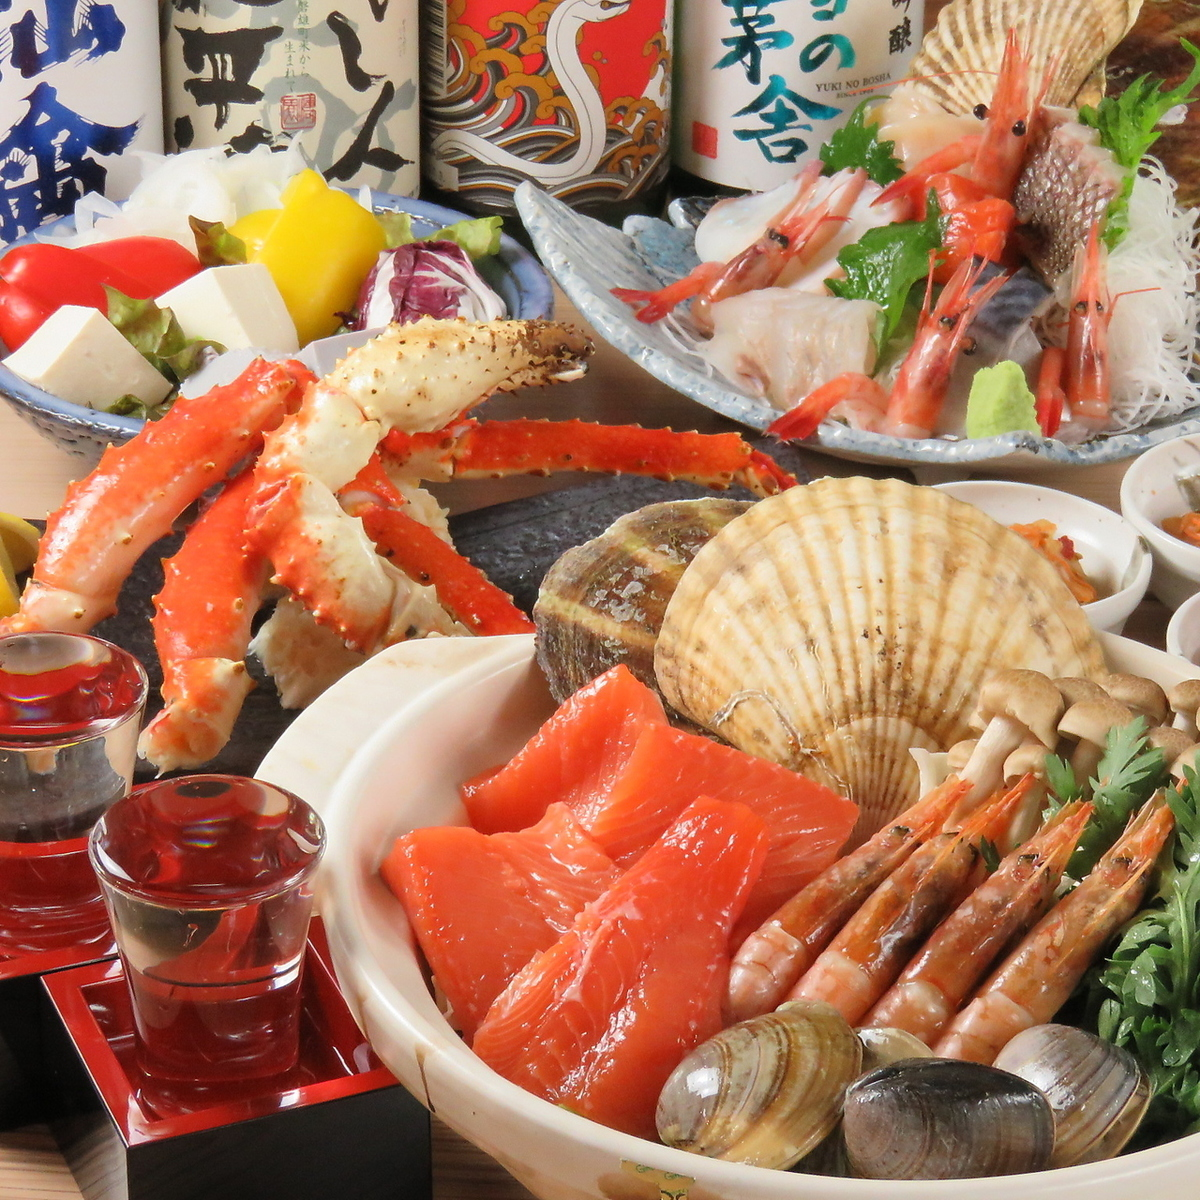 【Banquet course 4000 yen ~】 All 9 items including oven baked goods + 2H with all you can drink ☆